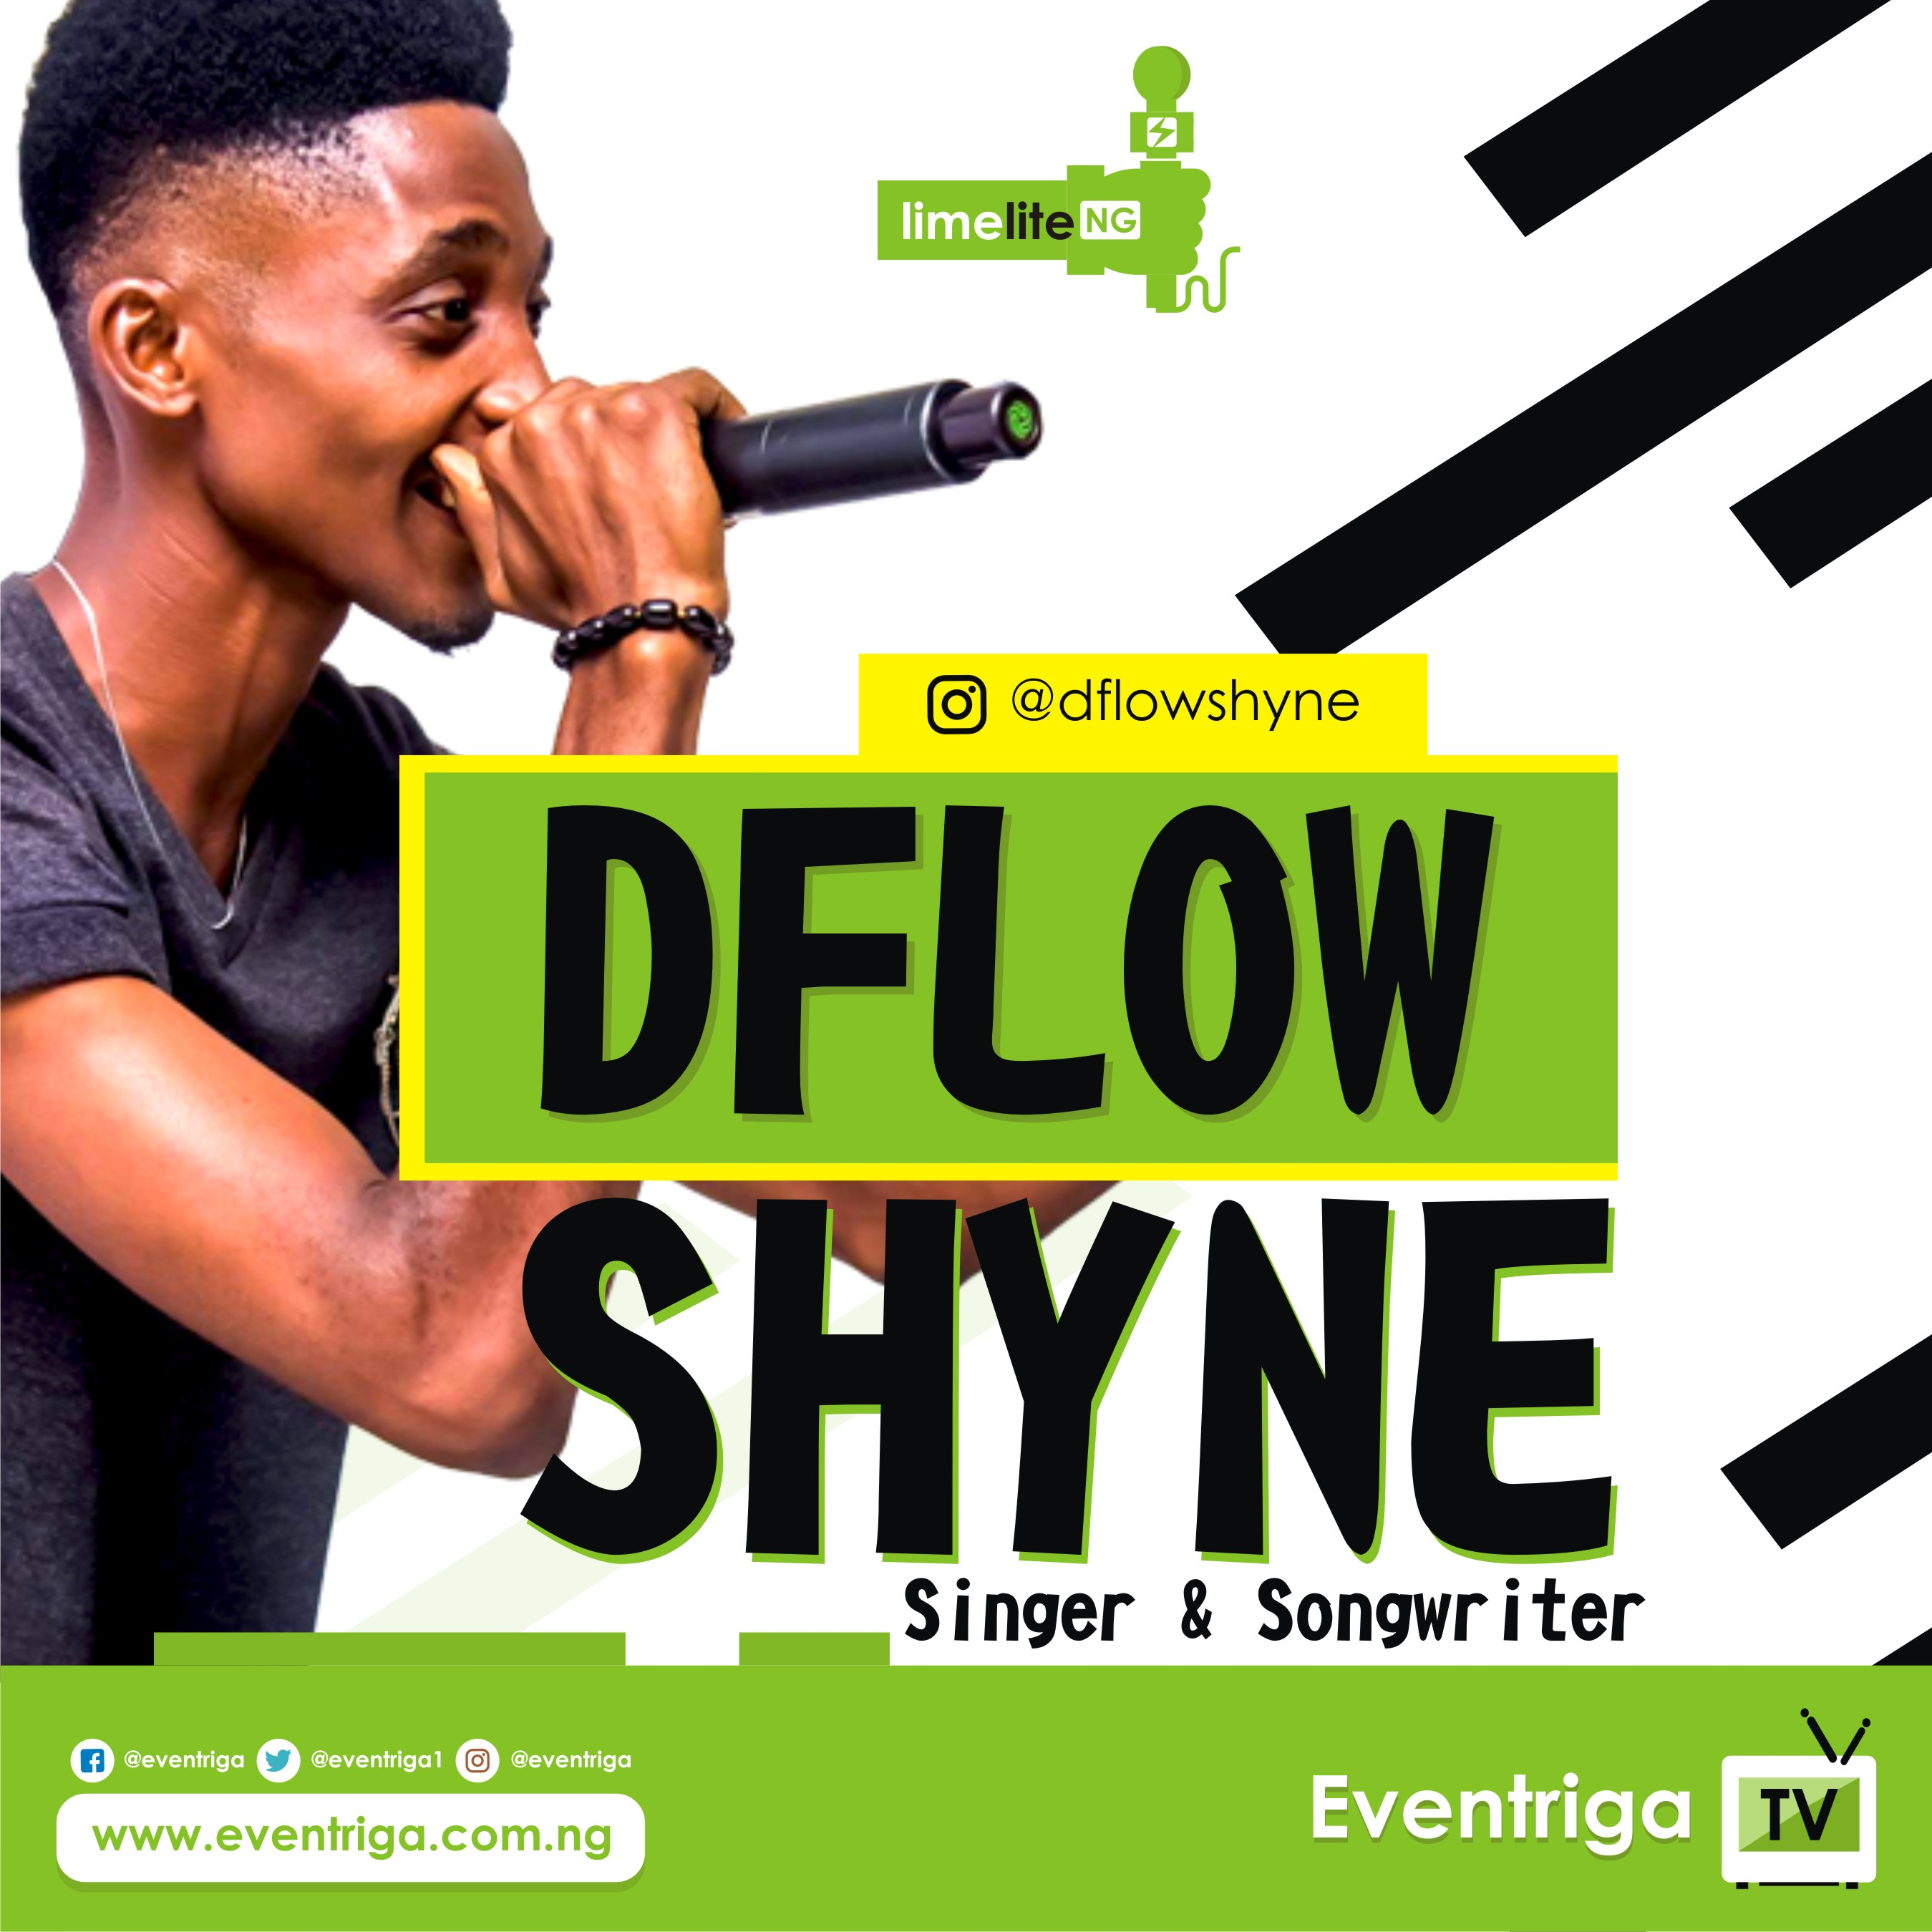 dflow_shyne_limelite by eventriga